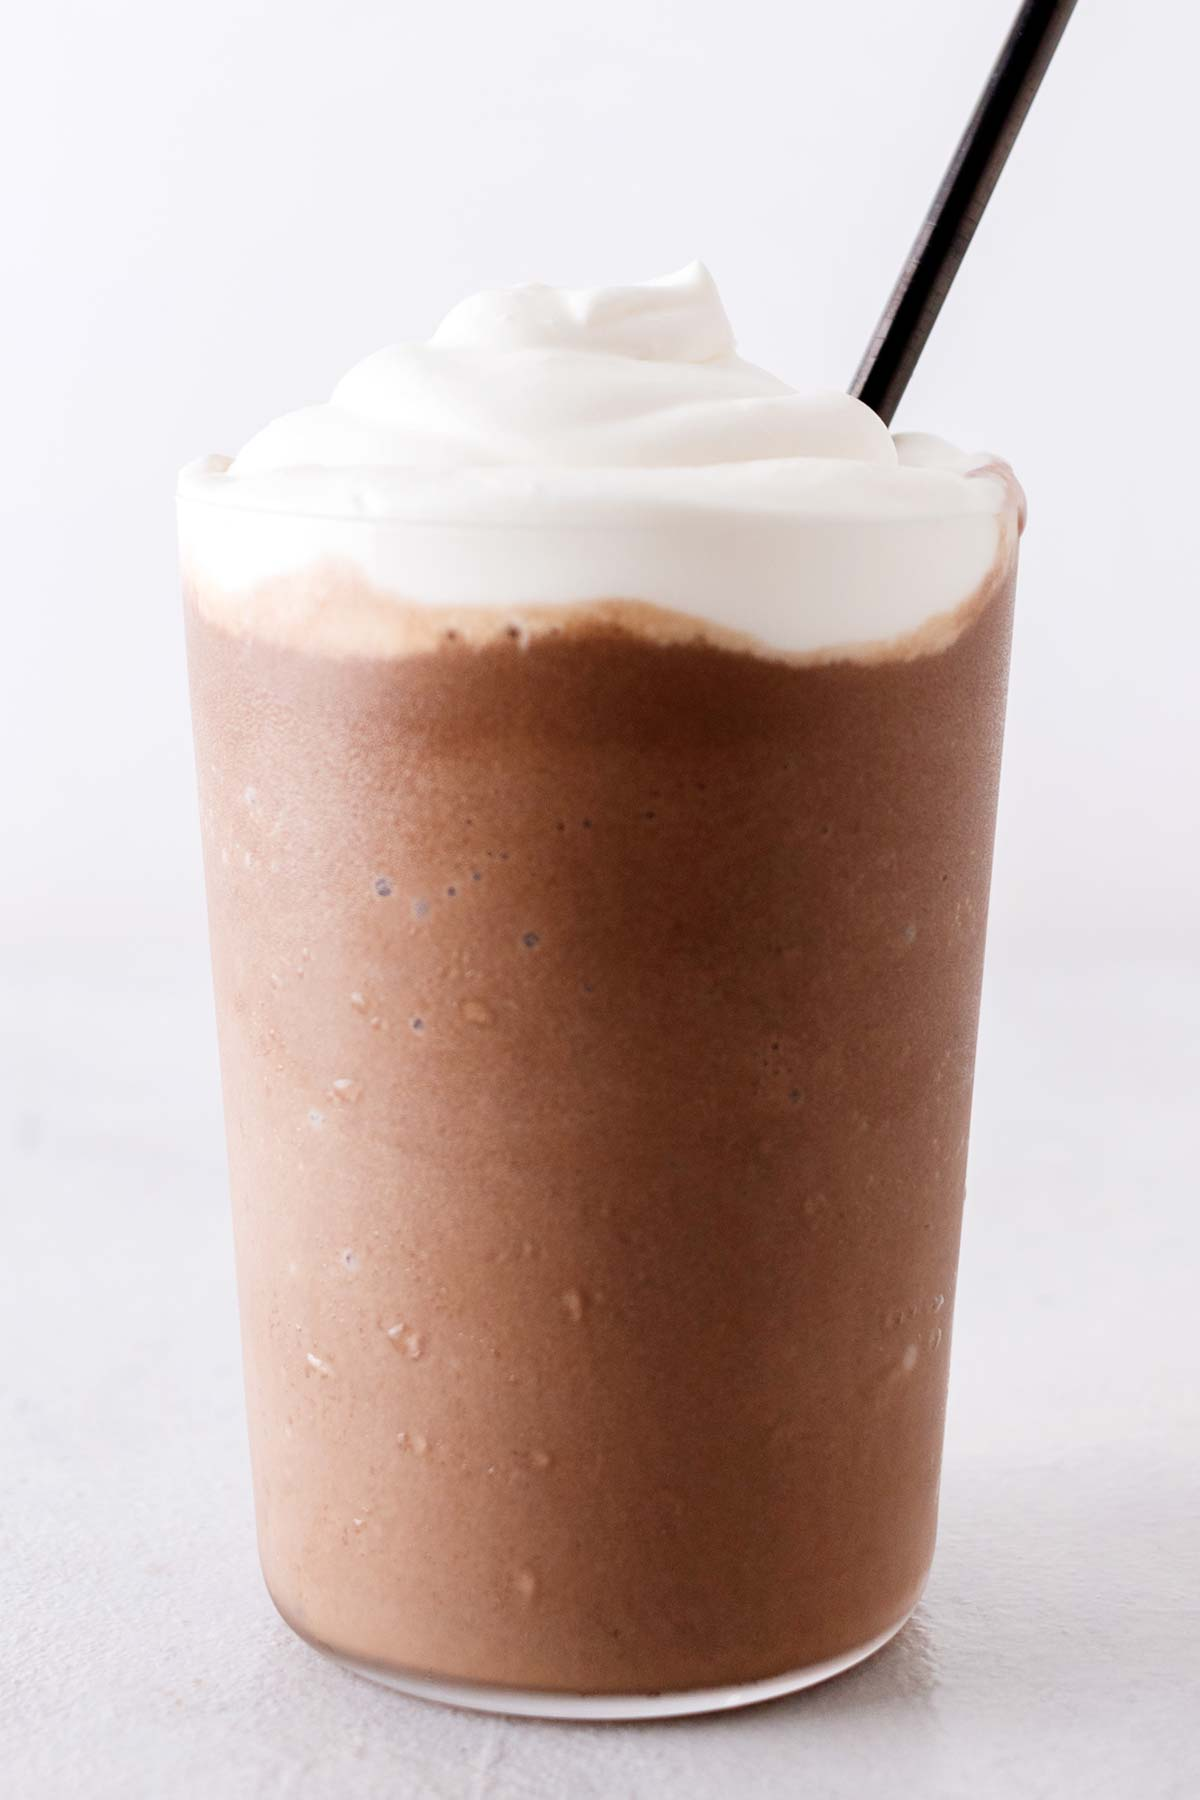 Homemade Mocha Frappuccino drink in a cup with whipped cream.